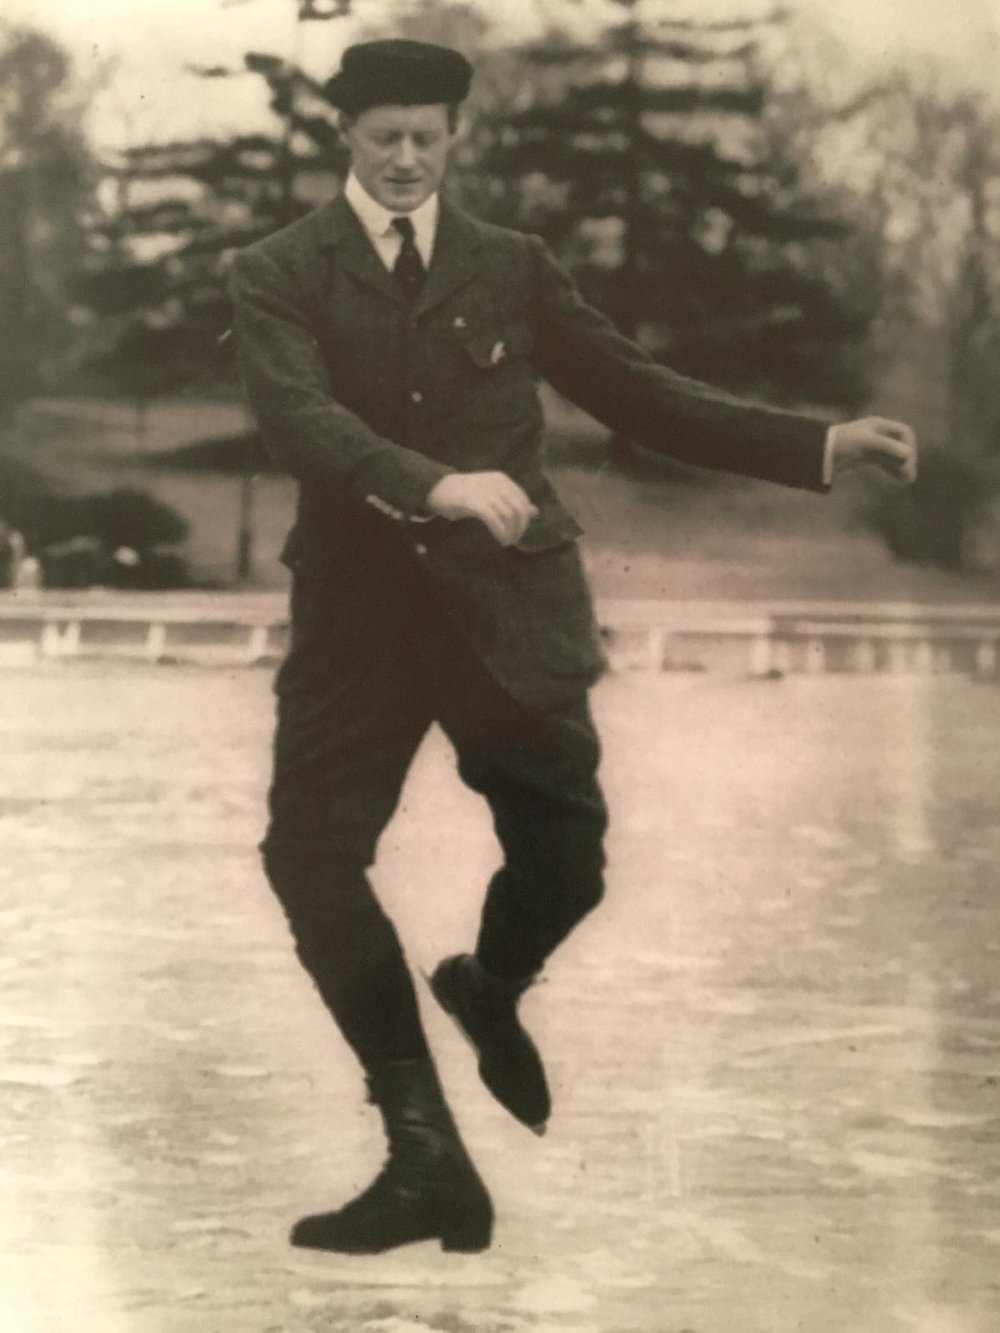 Photo from The Art Of Skating, Irving Brokaw